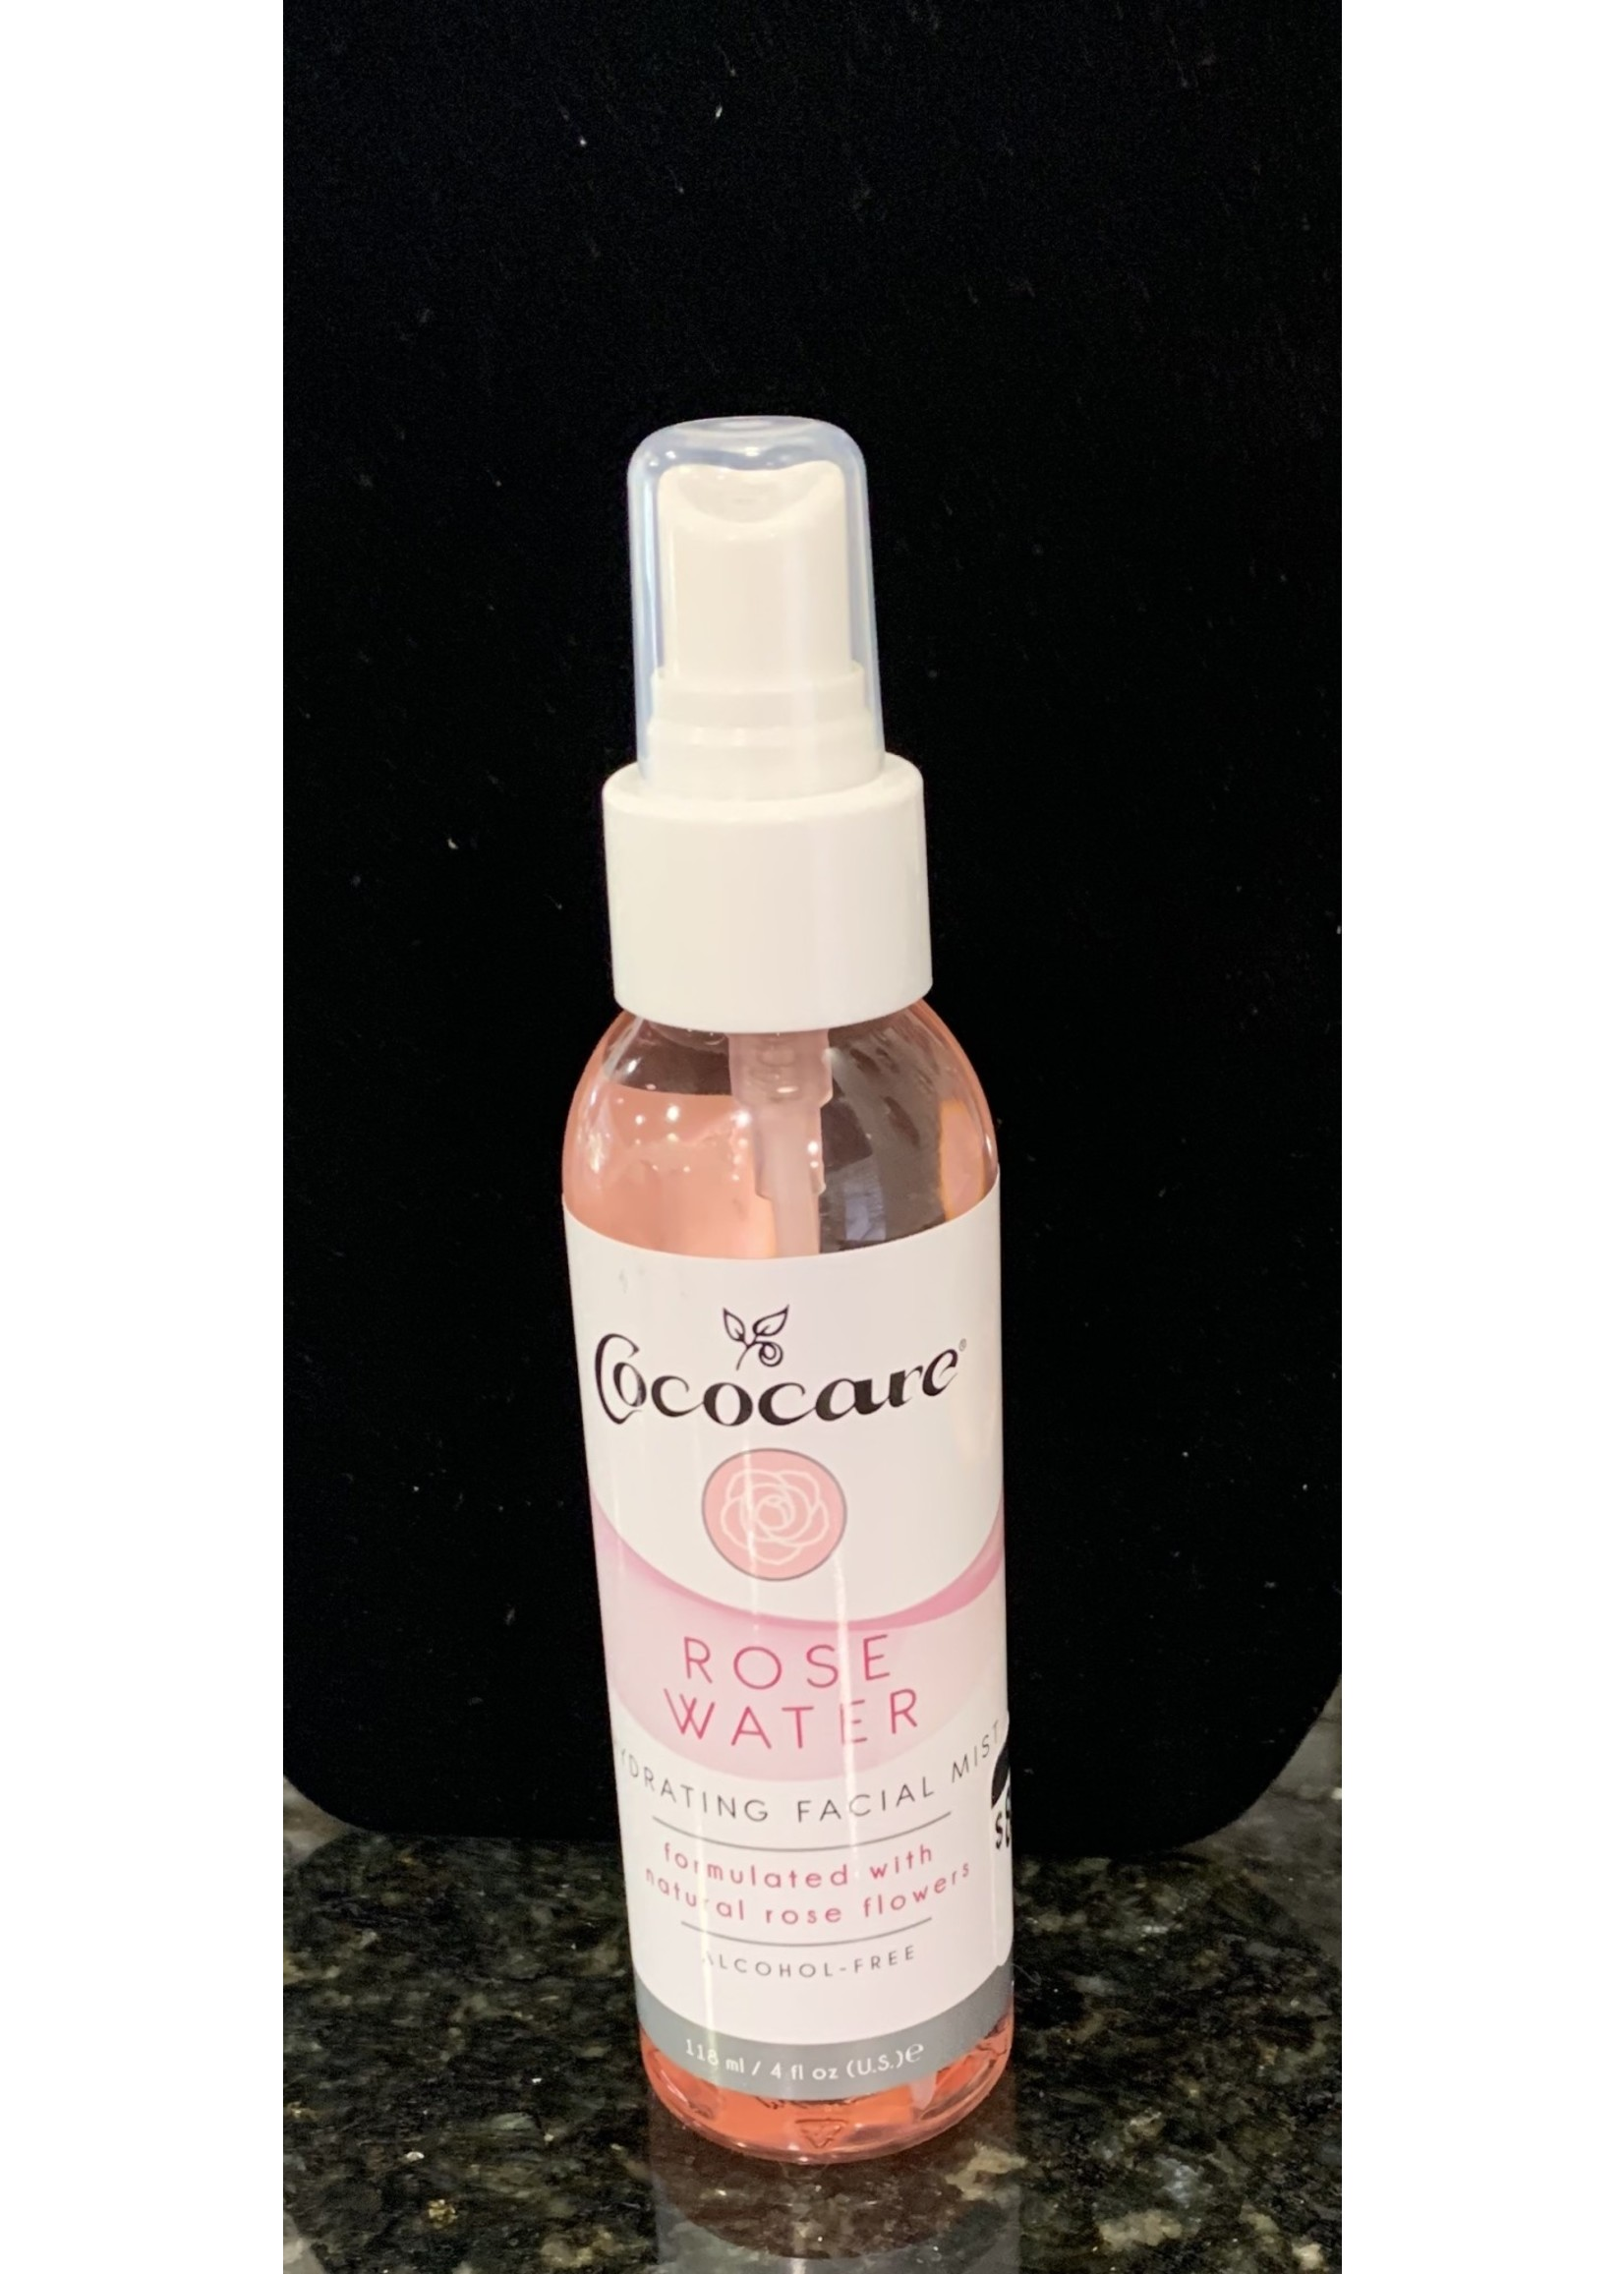 Coccolare rose water hydrating facial mist